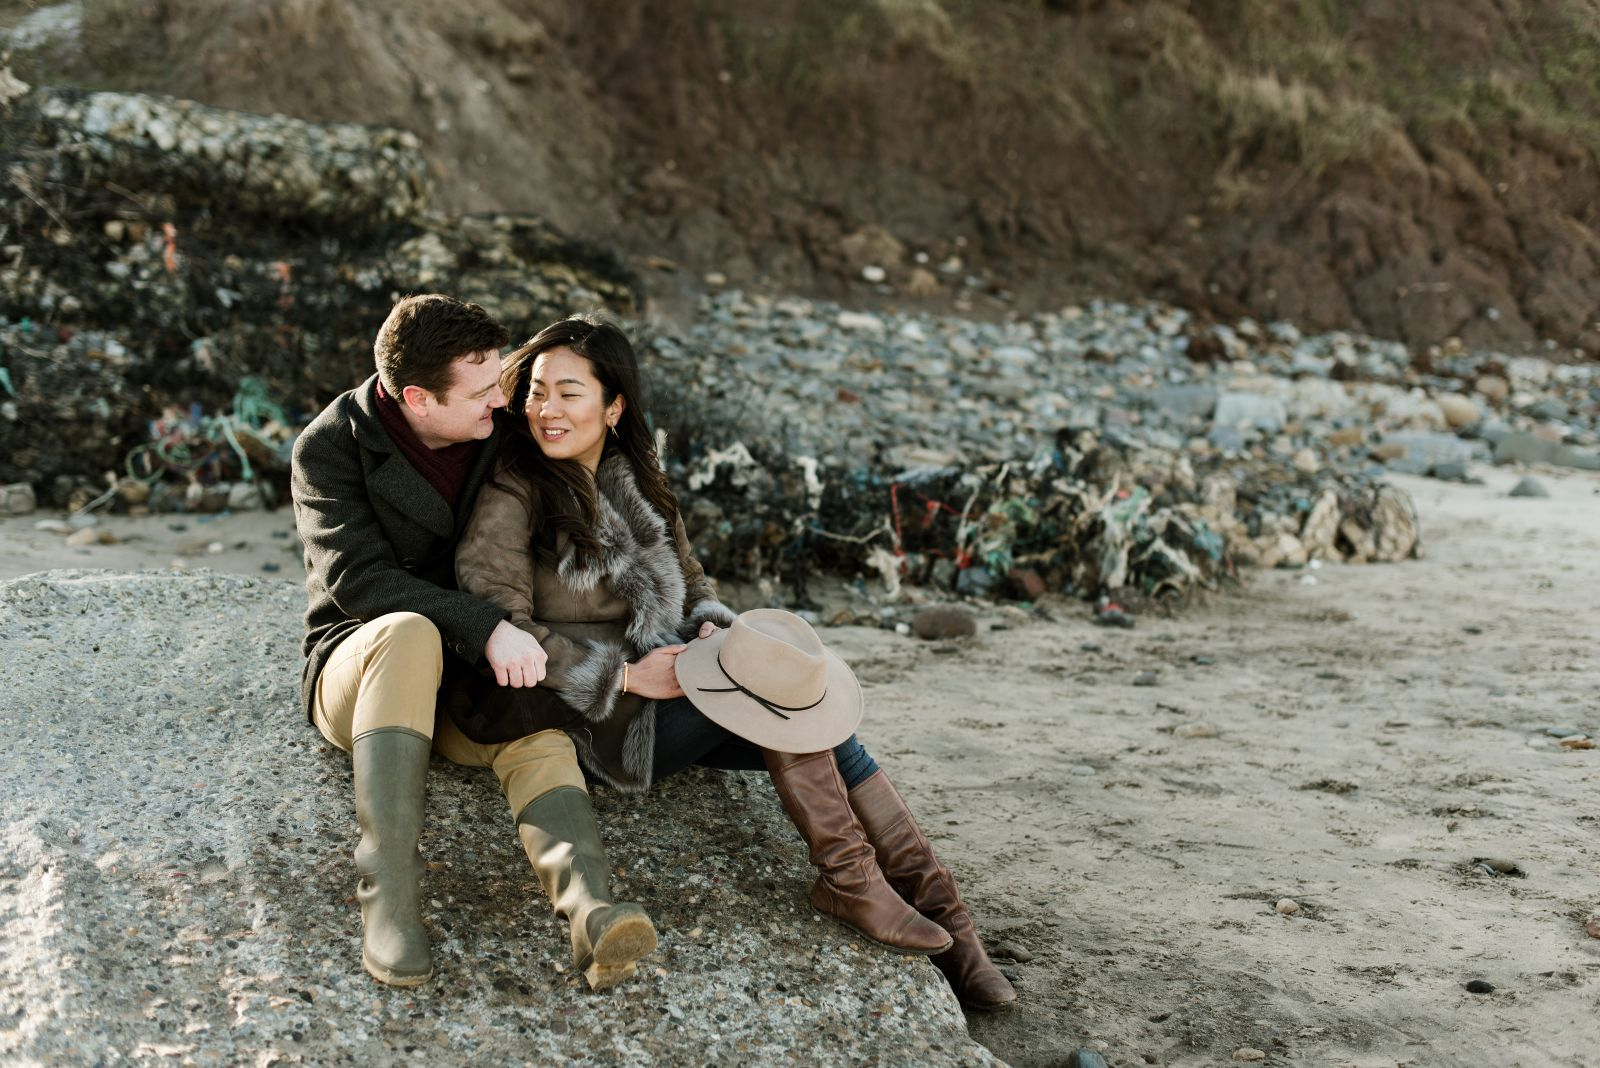 Engagement Photography relaxing on the beach together